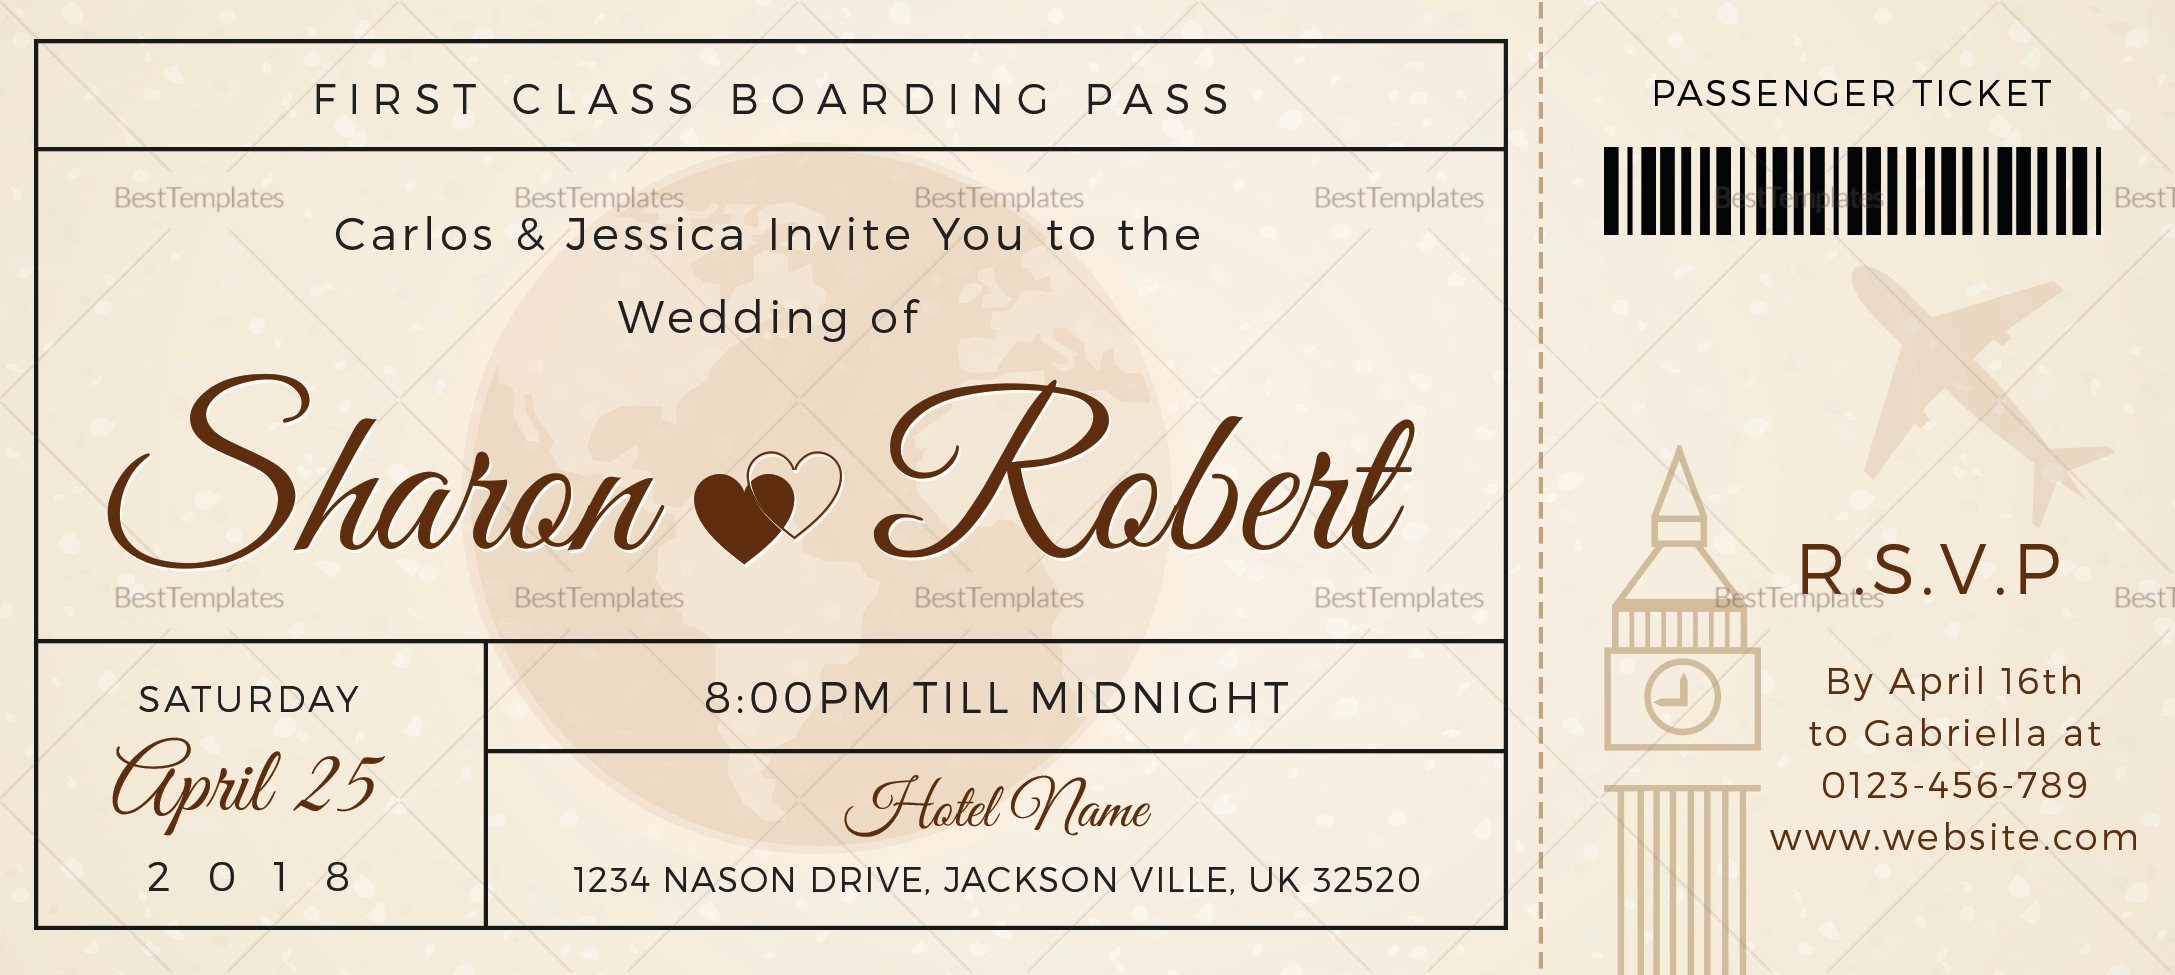 Boarding Pass Invitation Template Free Fresh Wedding Boarding Pass Invitation Ticket Design Template In